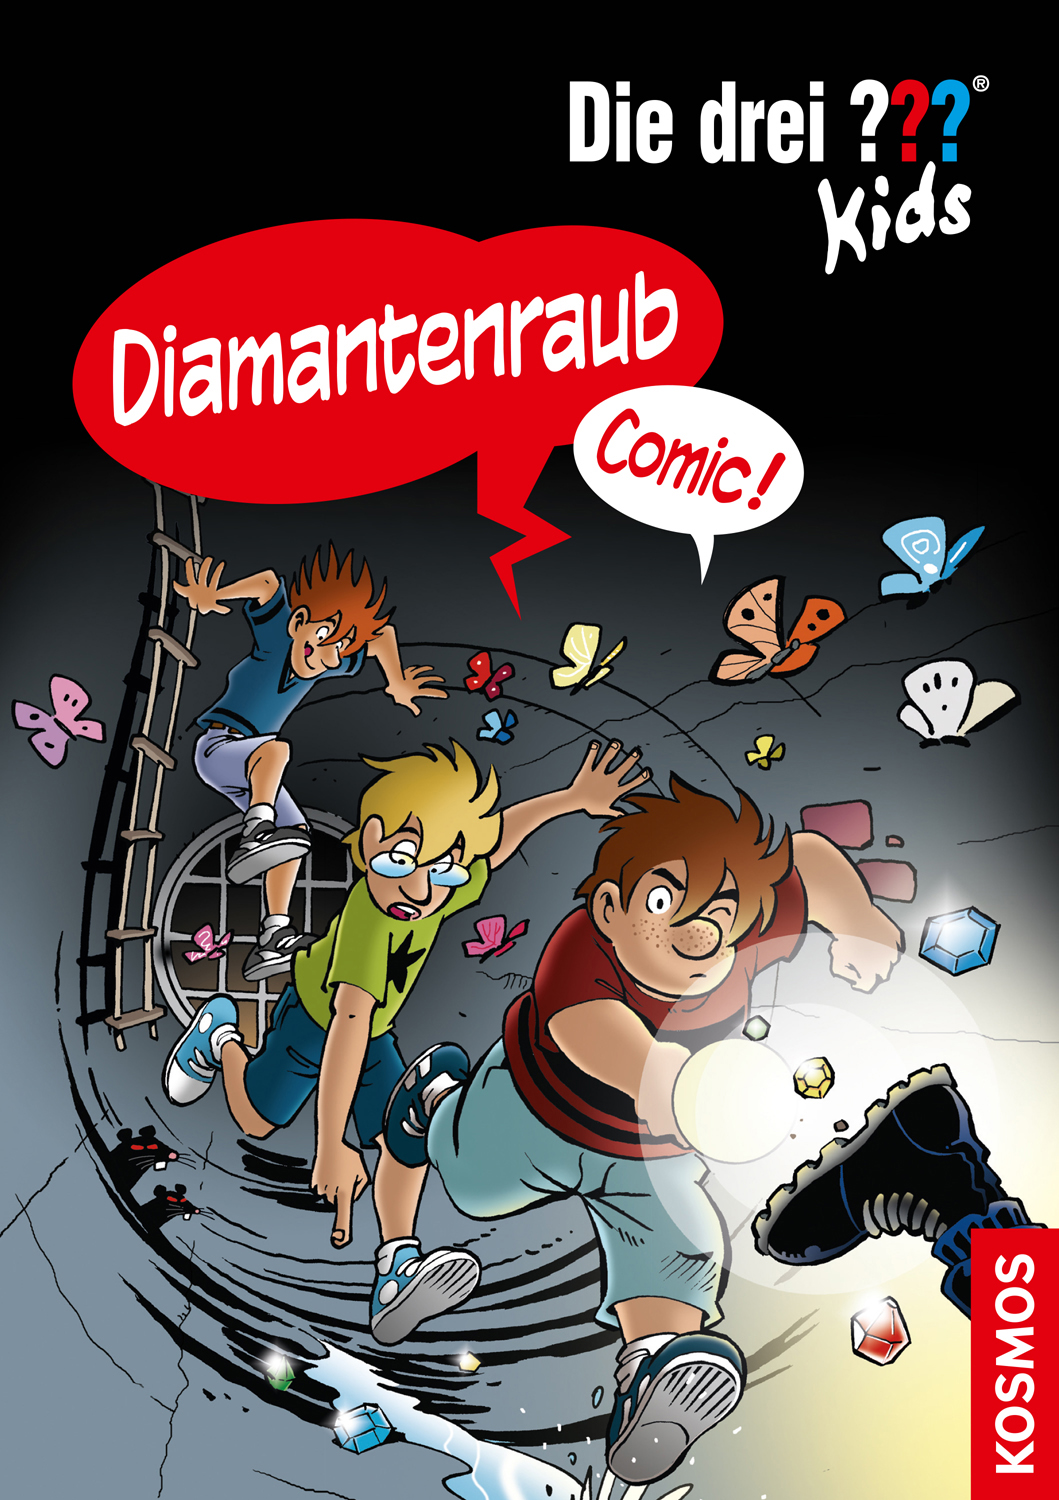 Kids Diamantenraub ?? Comic